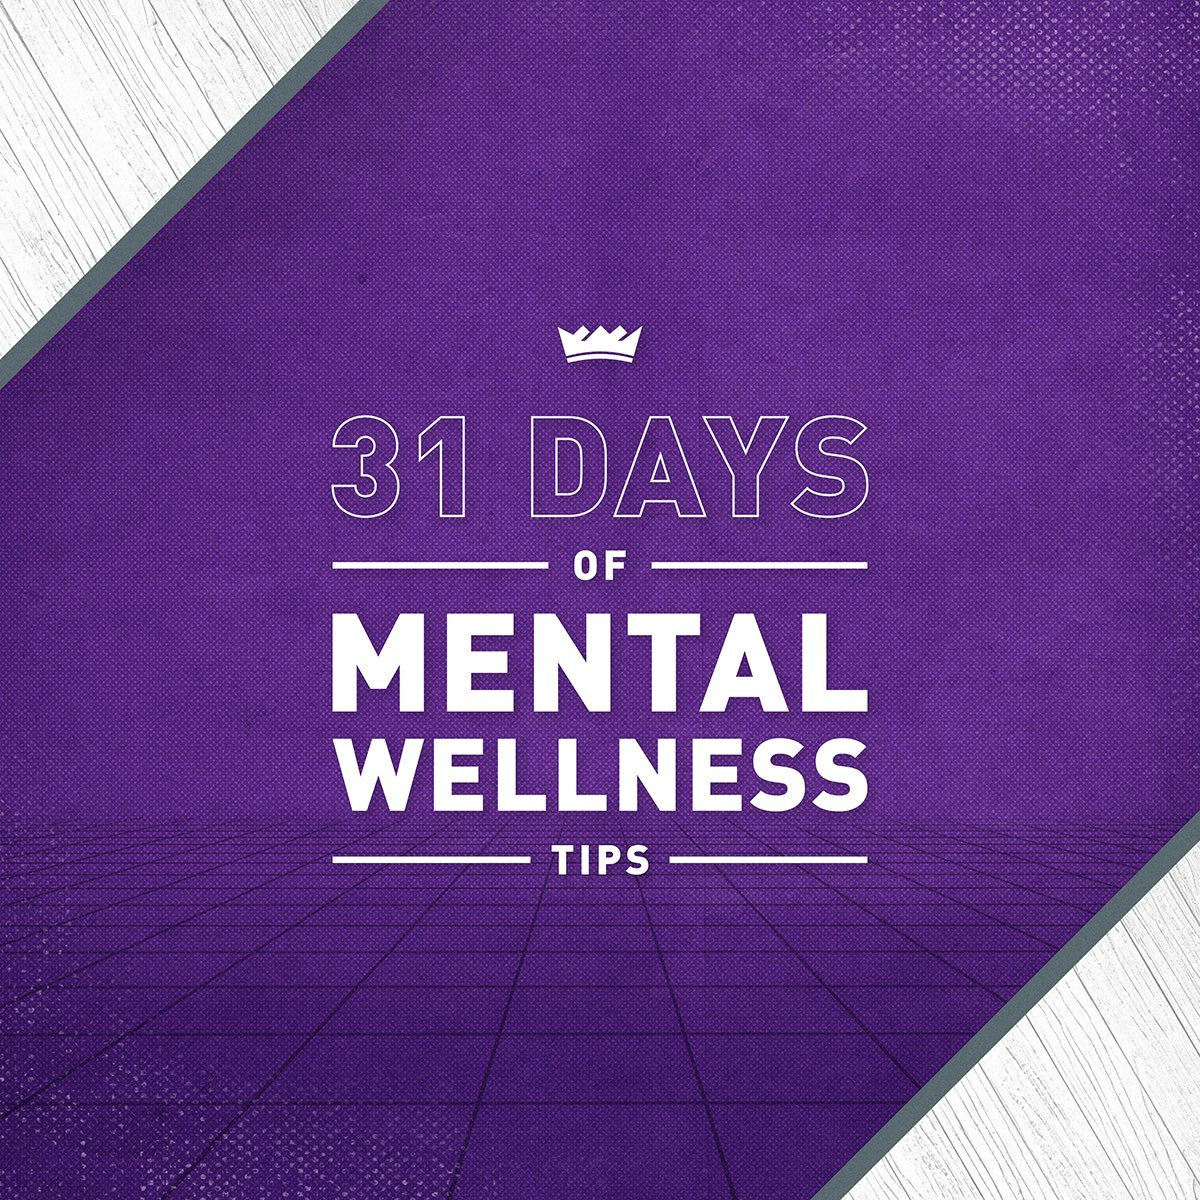 May is #MentalHealthAwarenessMonth. For the next 31 days, we'll be sharing mind health tips that you can incorporate into your daily life. 💜 https://t.co/UMpWgX0SGD